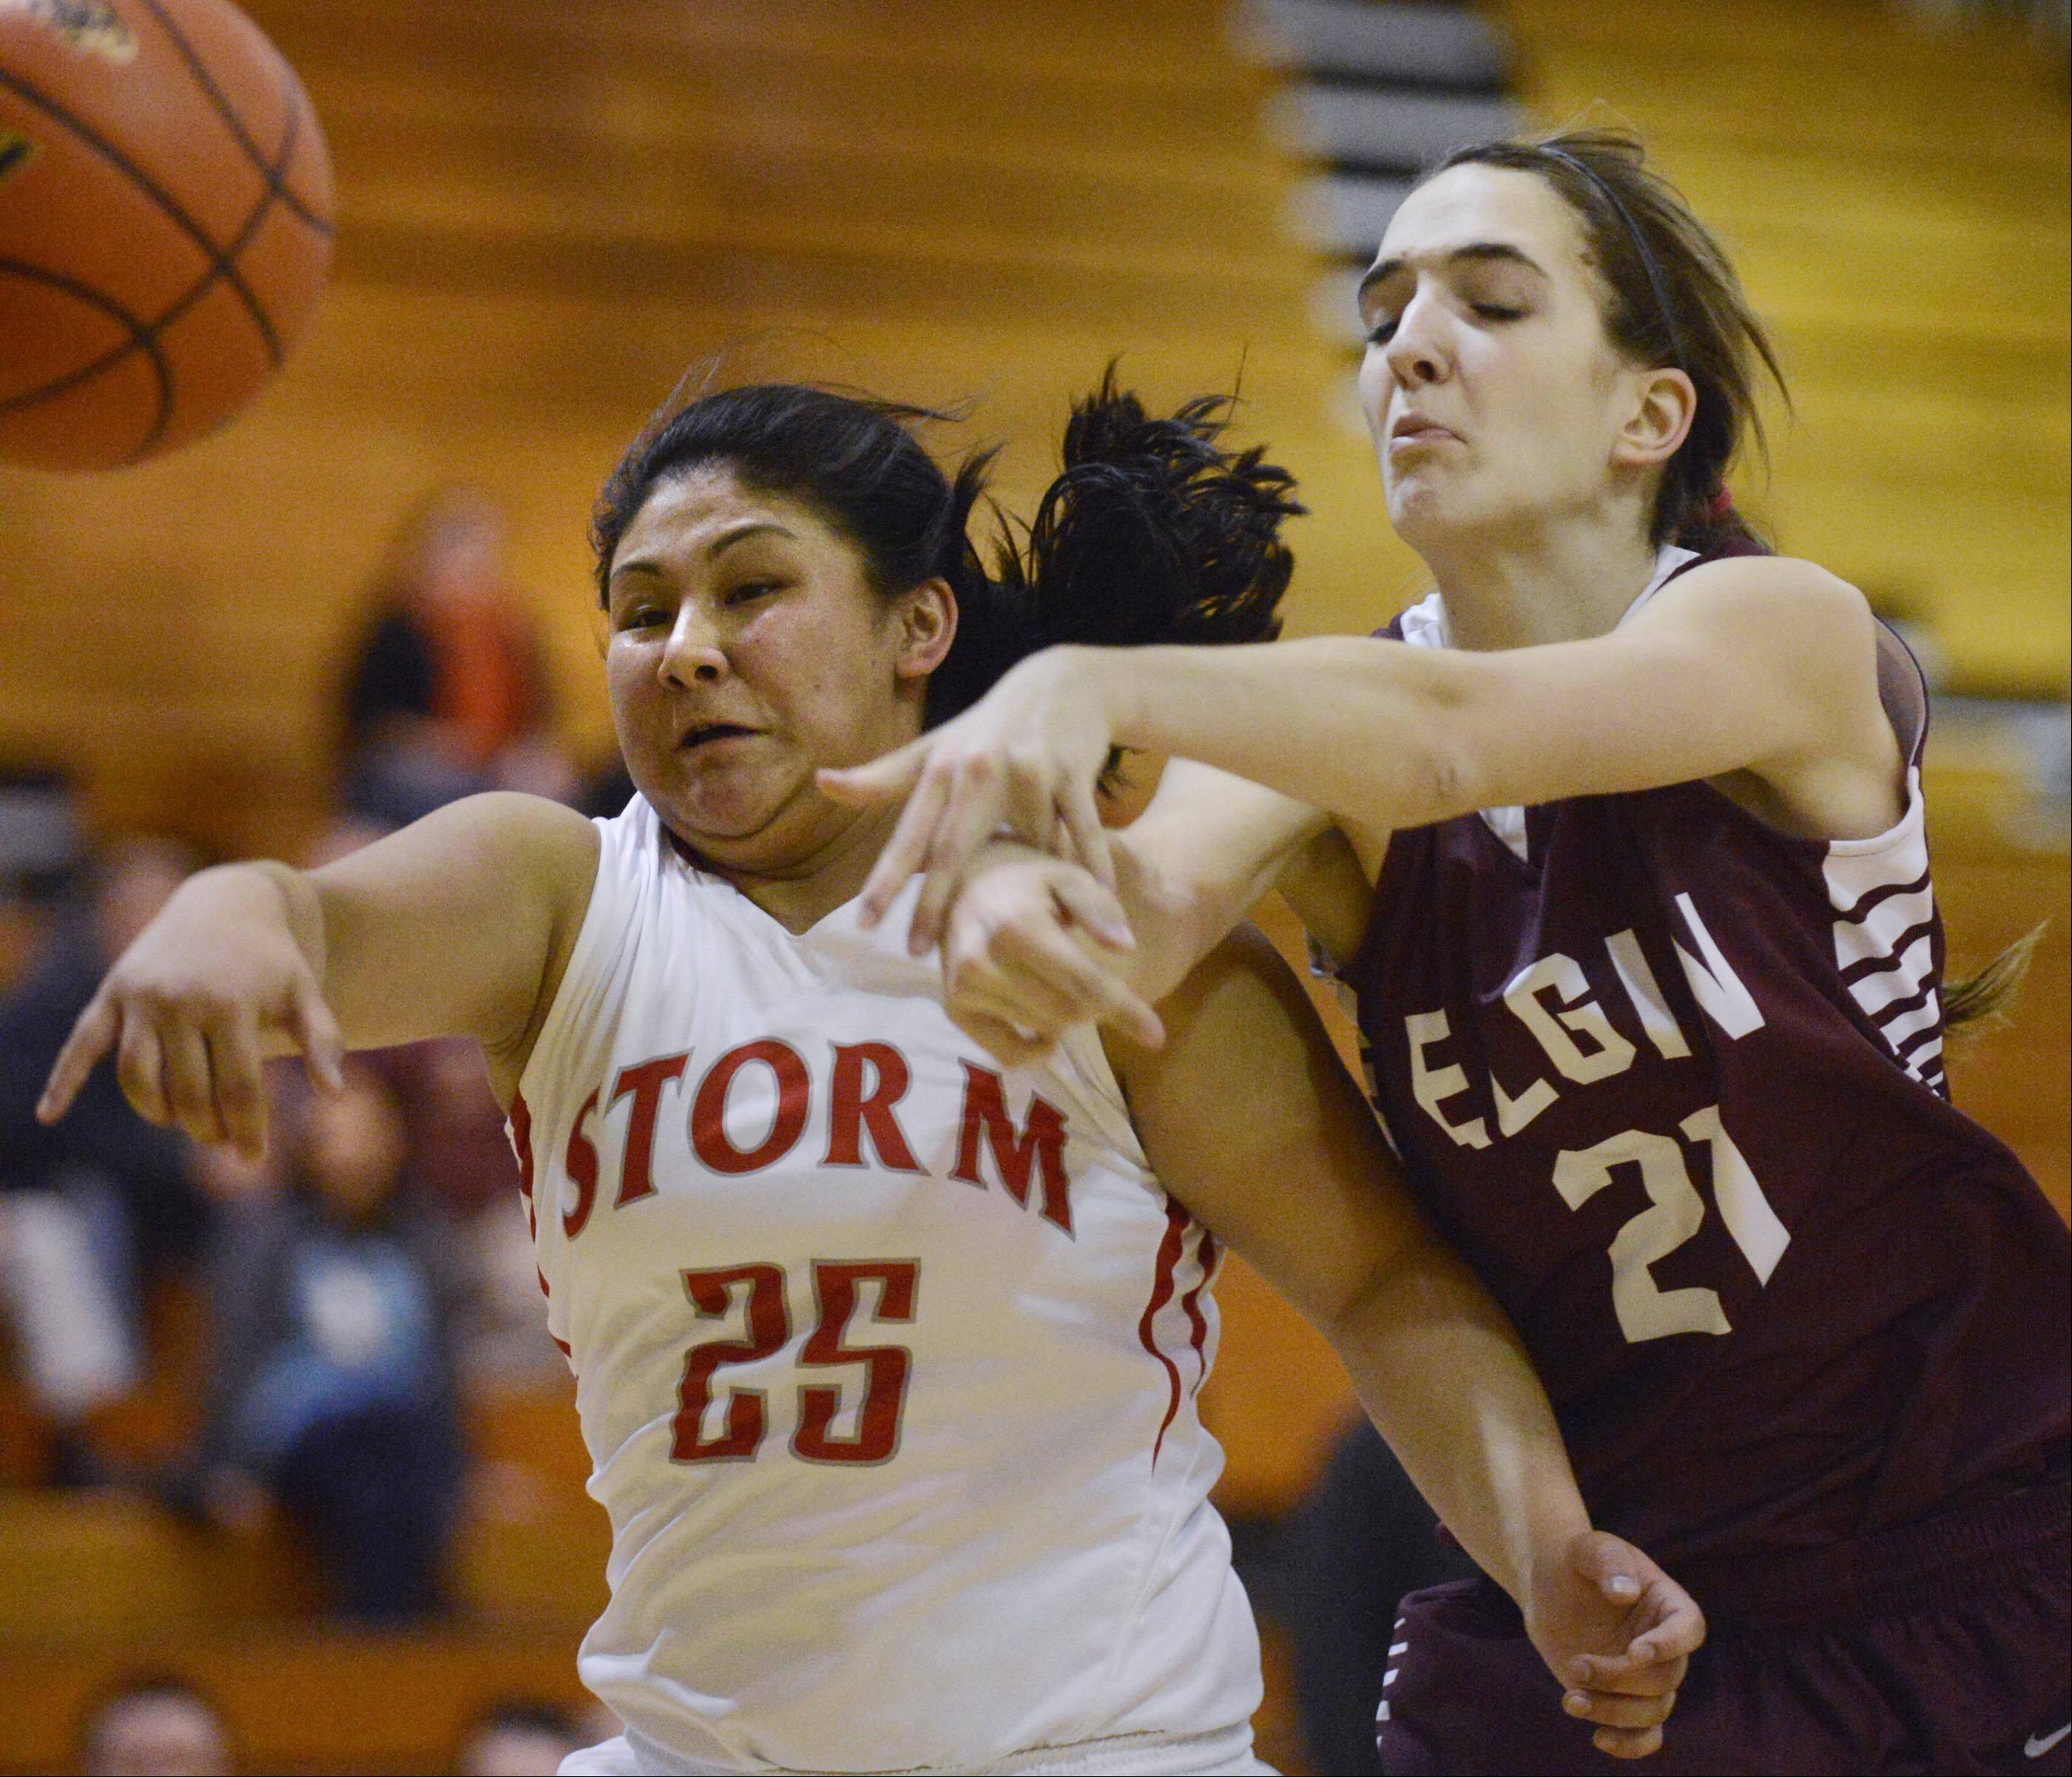 Elgin's Tamara Milosevic and South Elgin's Nadia Yang reach for the ball.